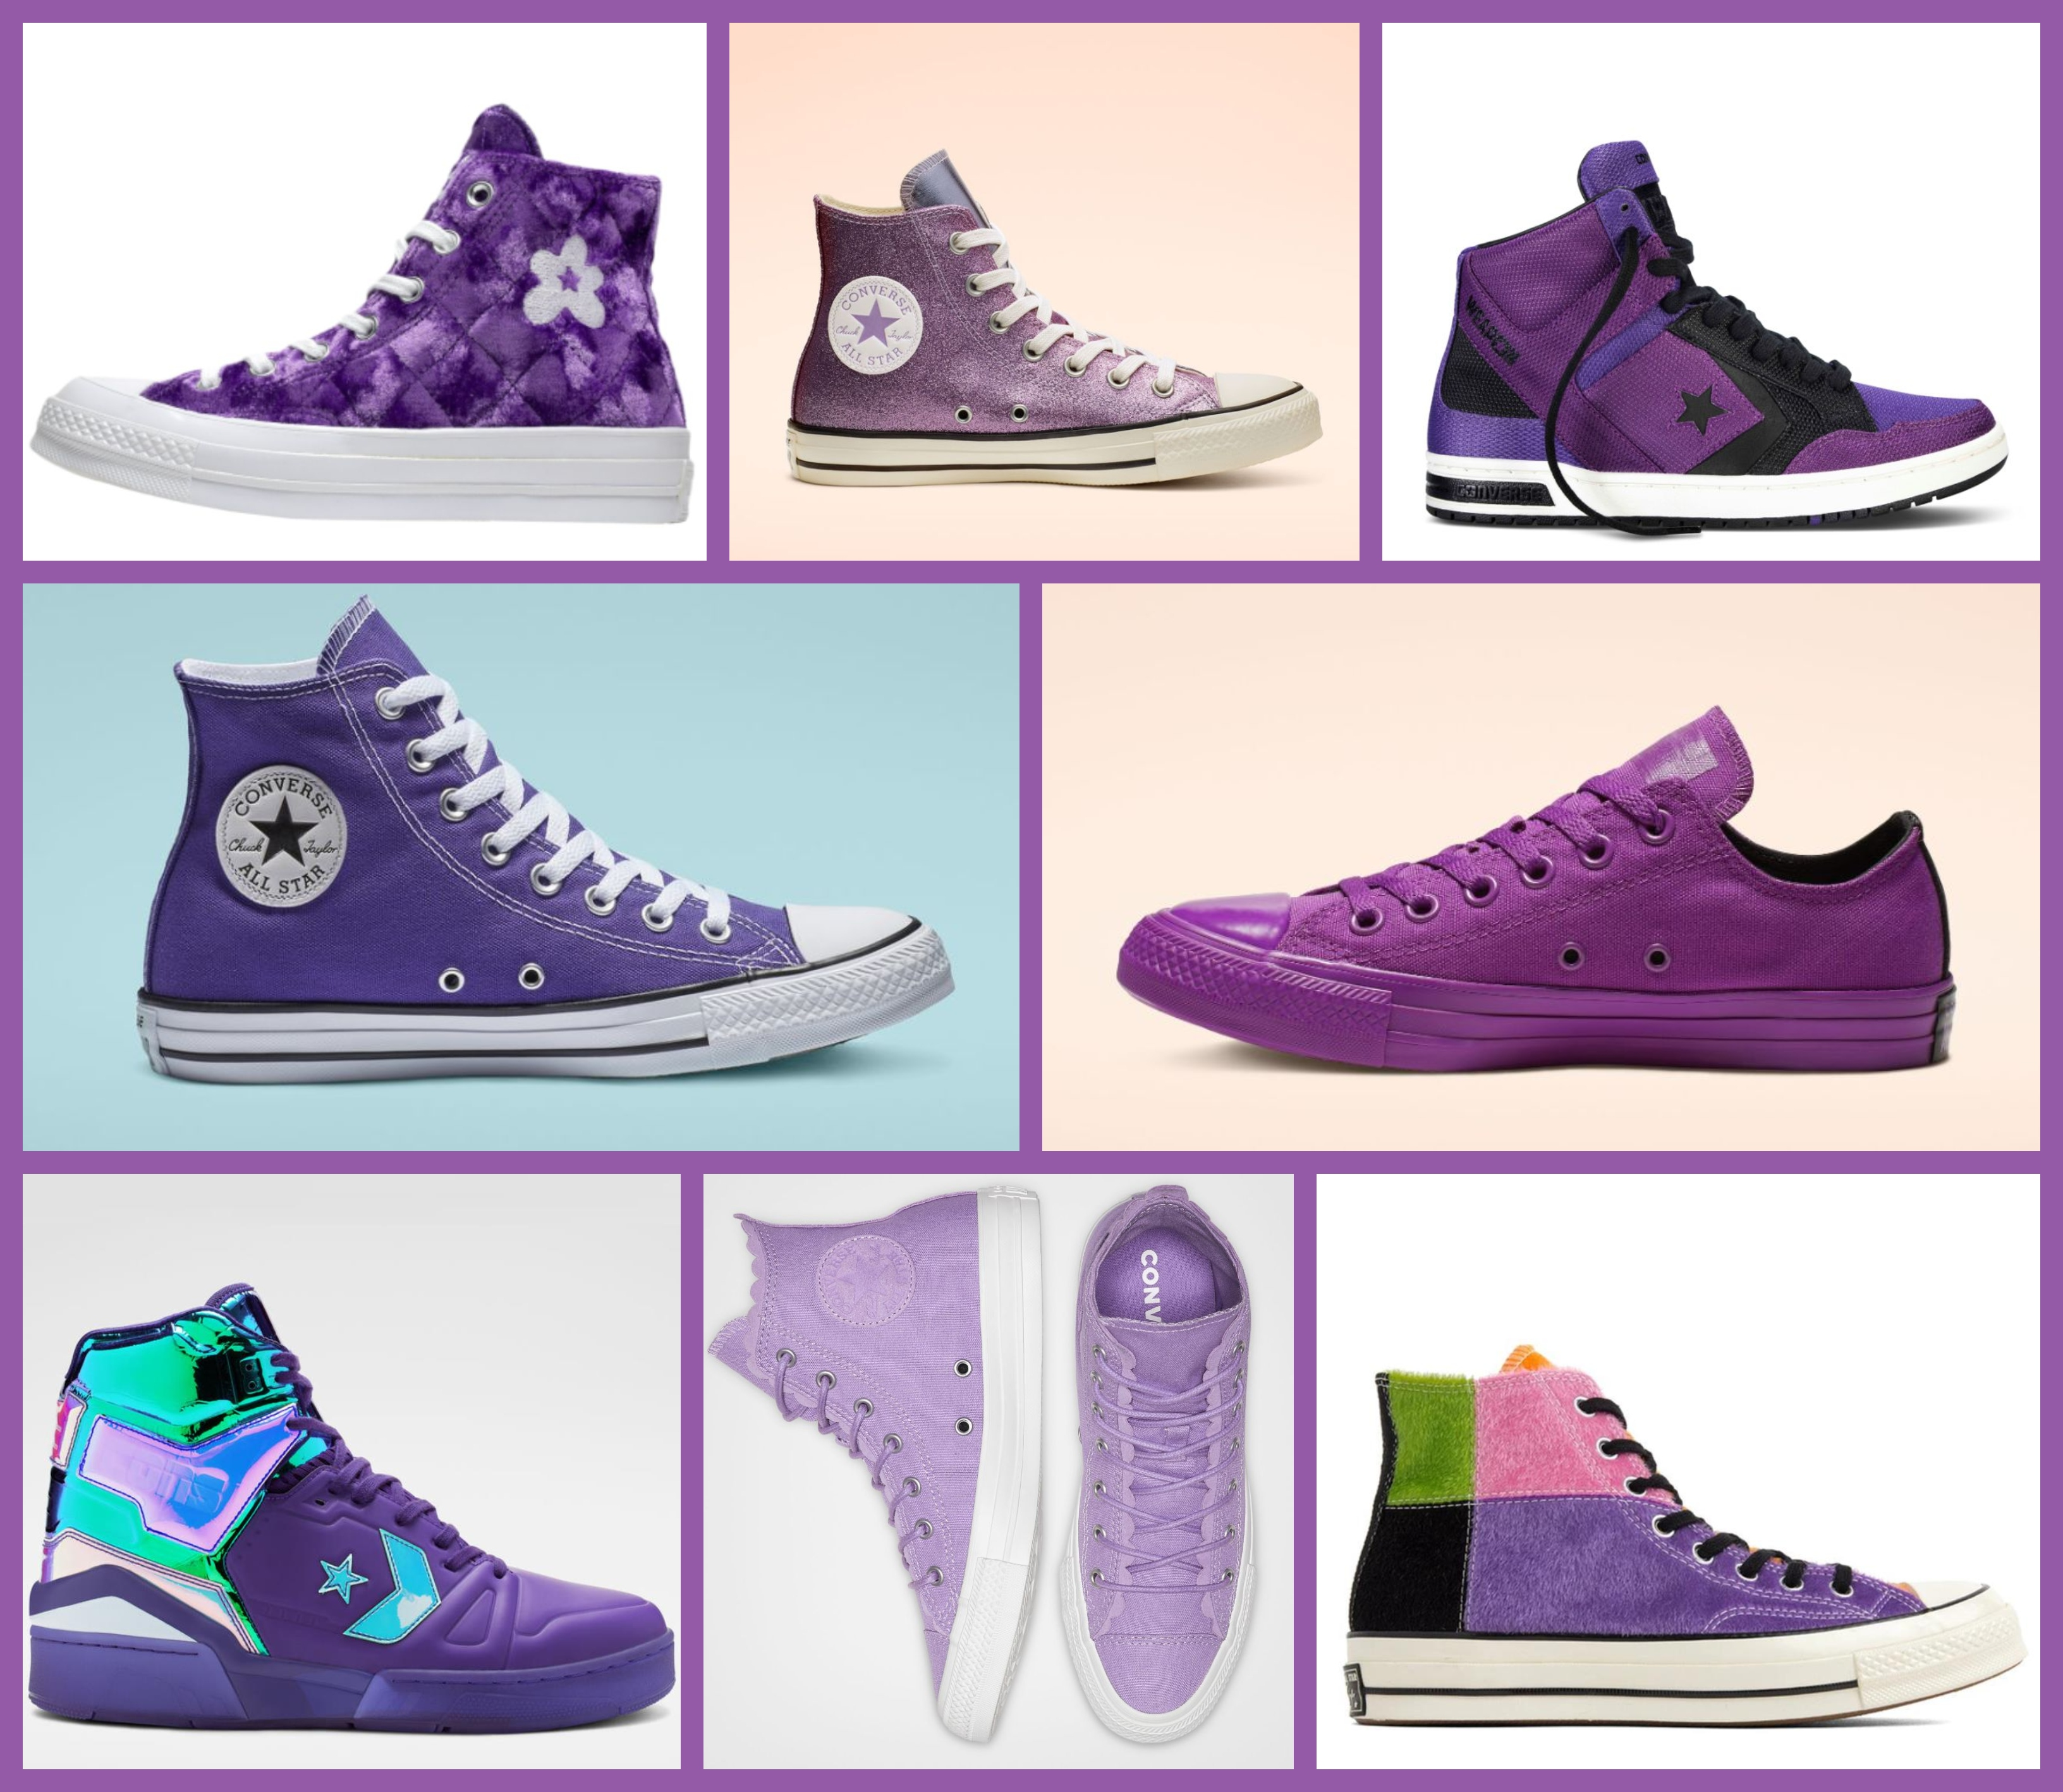 dd55c5c7f344 Purple Converse Shoes: The 37 Best purple high top, low top Converse  sneakers